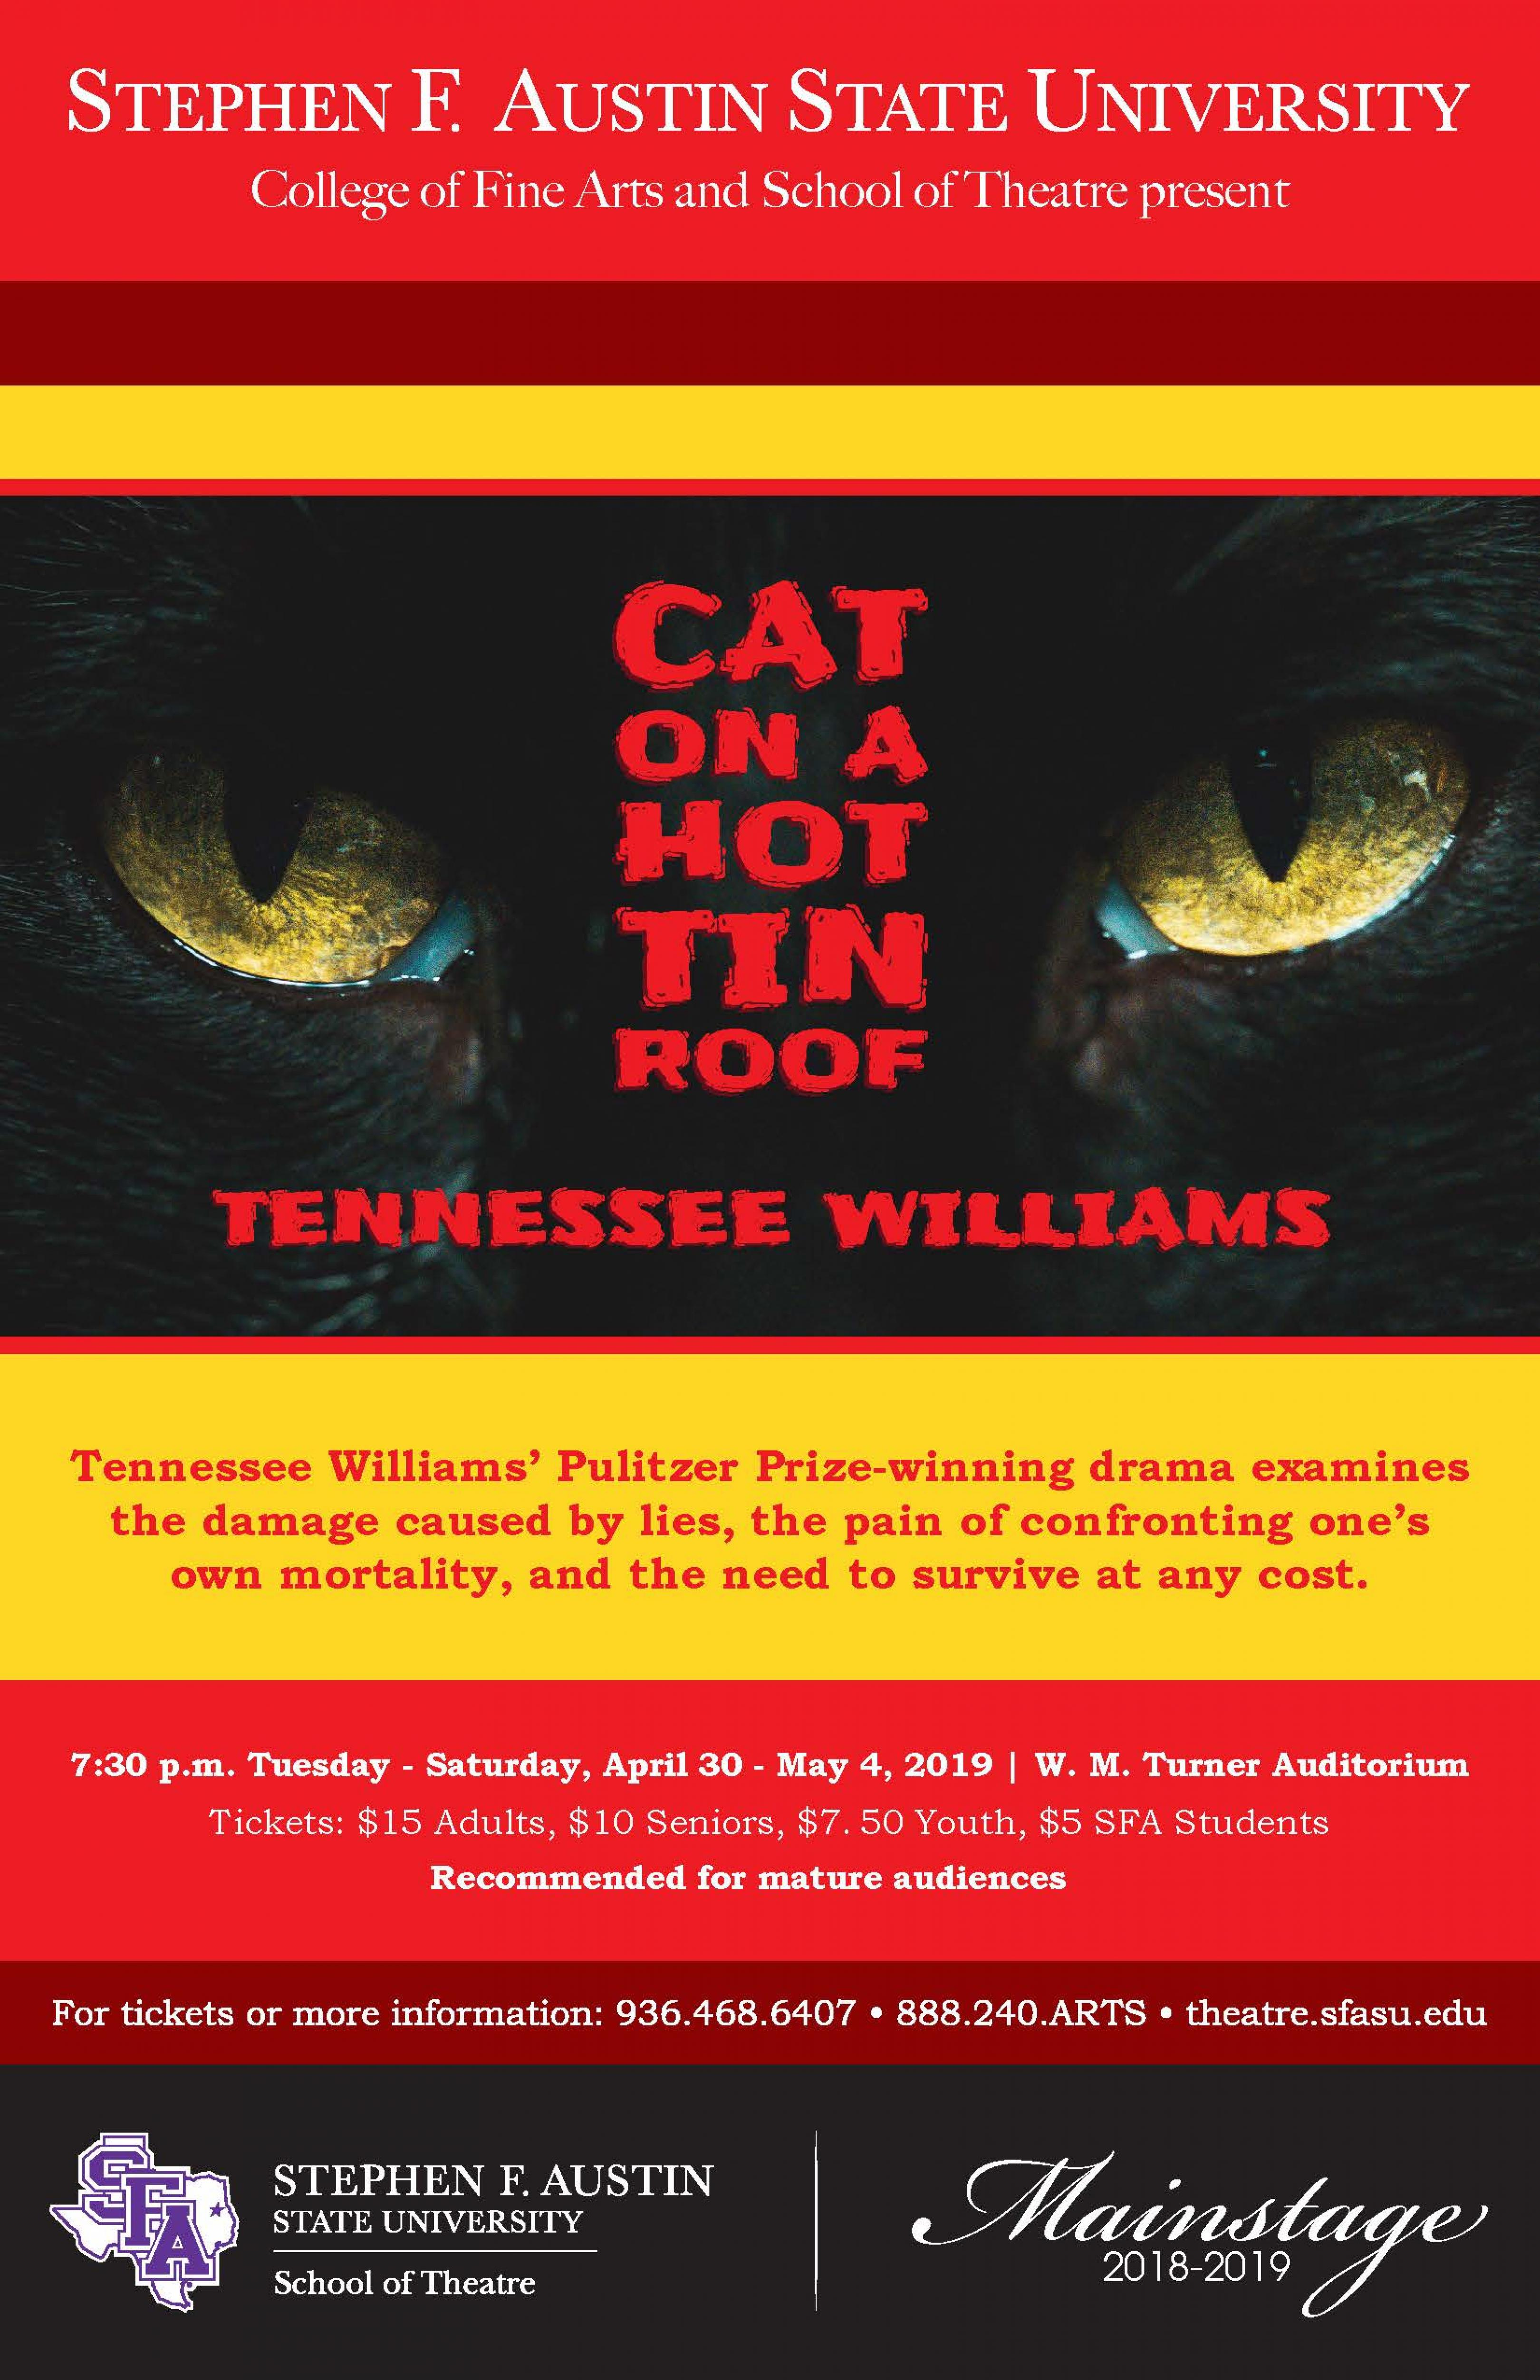 Cat On A Hot Tin Roof banner image